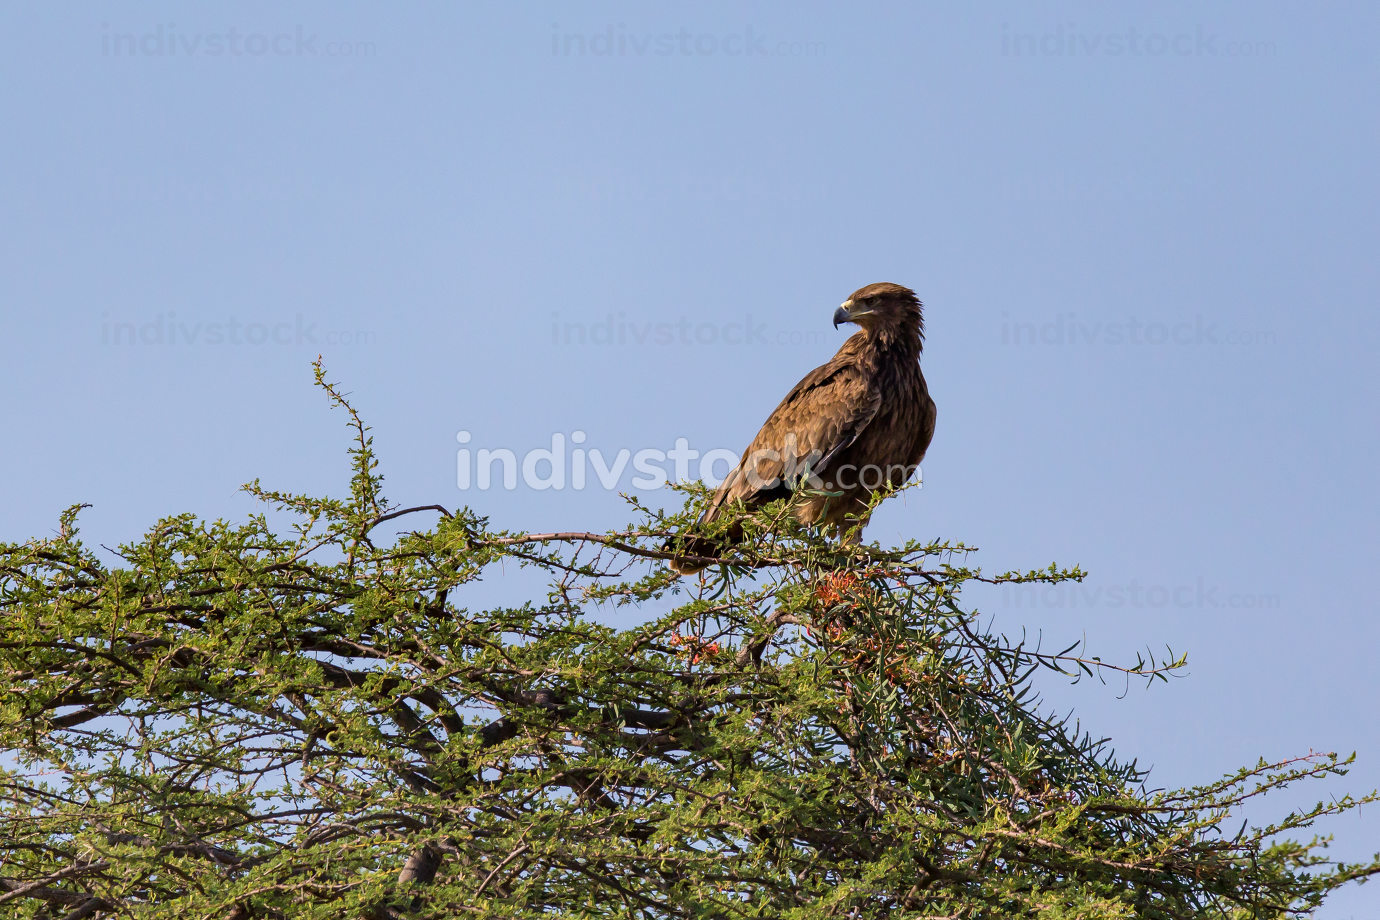 An eagle in the crown of a tree